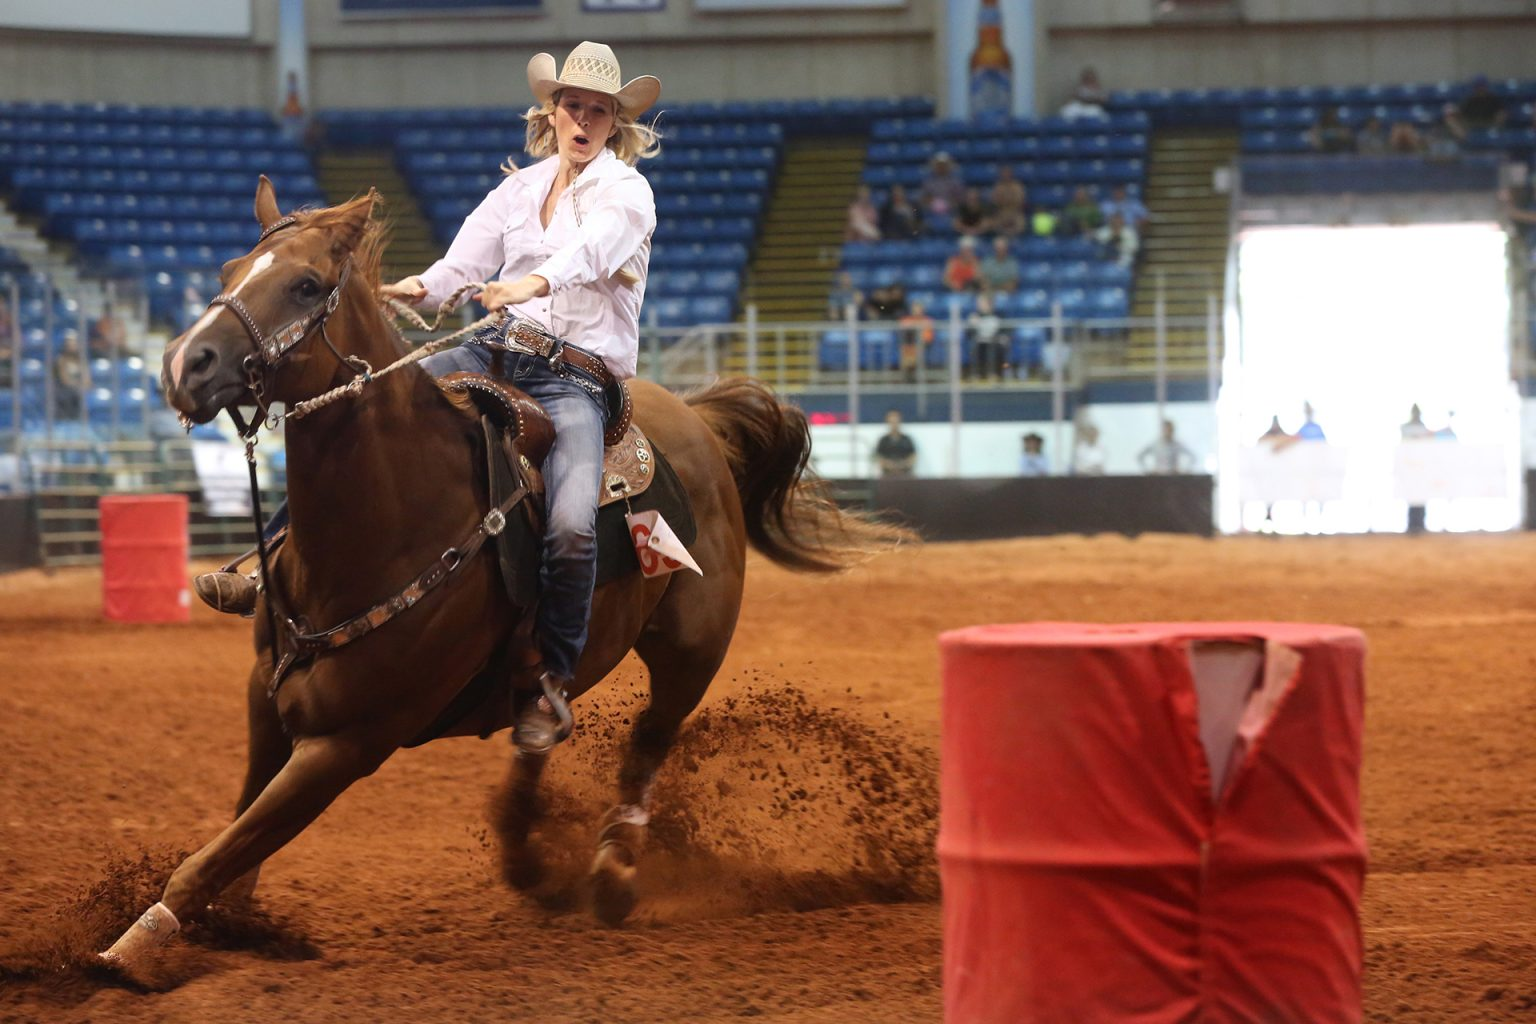 Old Home Week Barrel Racing Competition